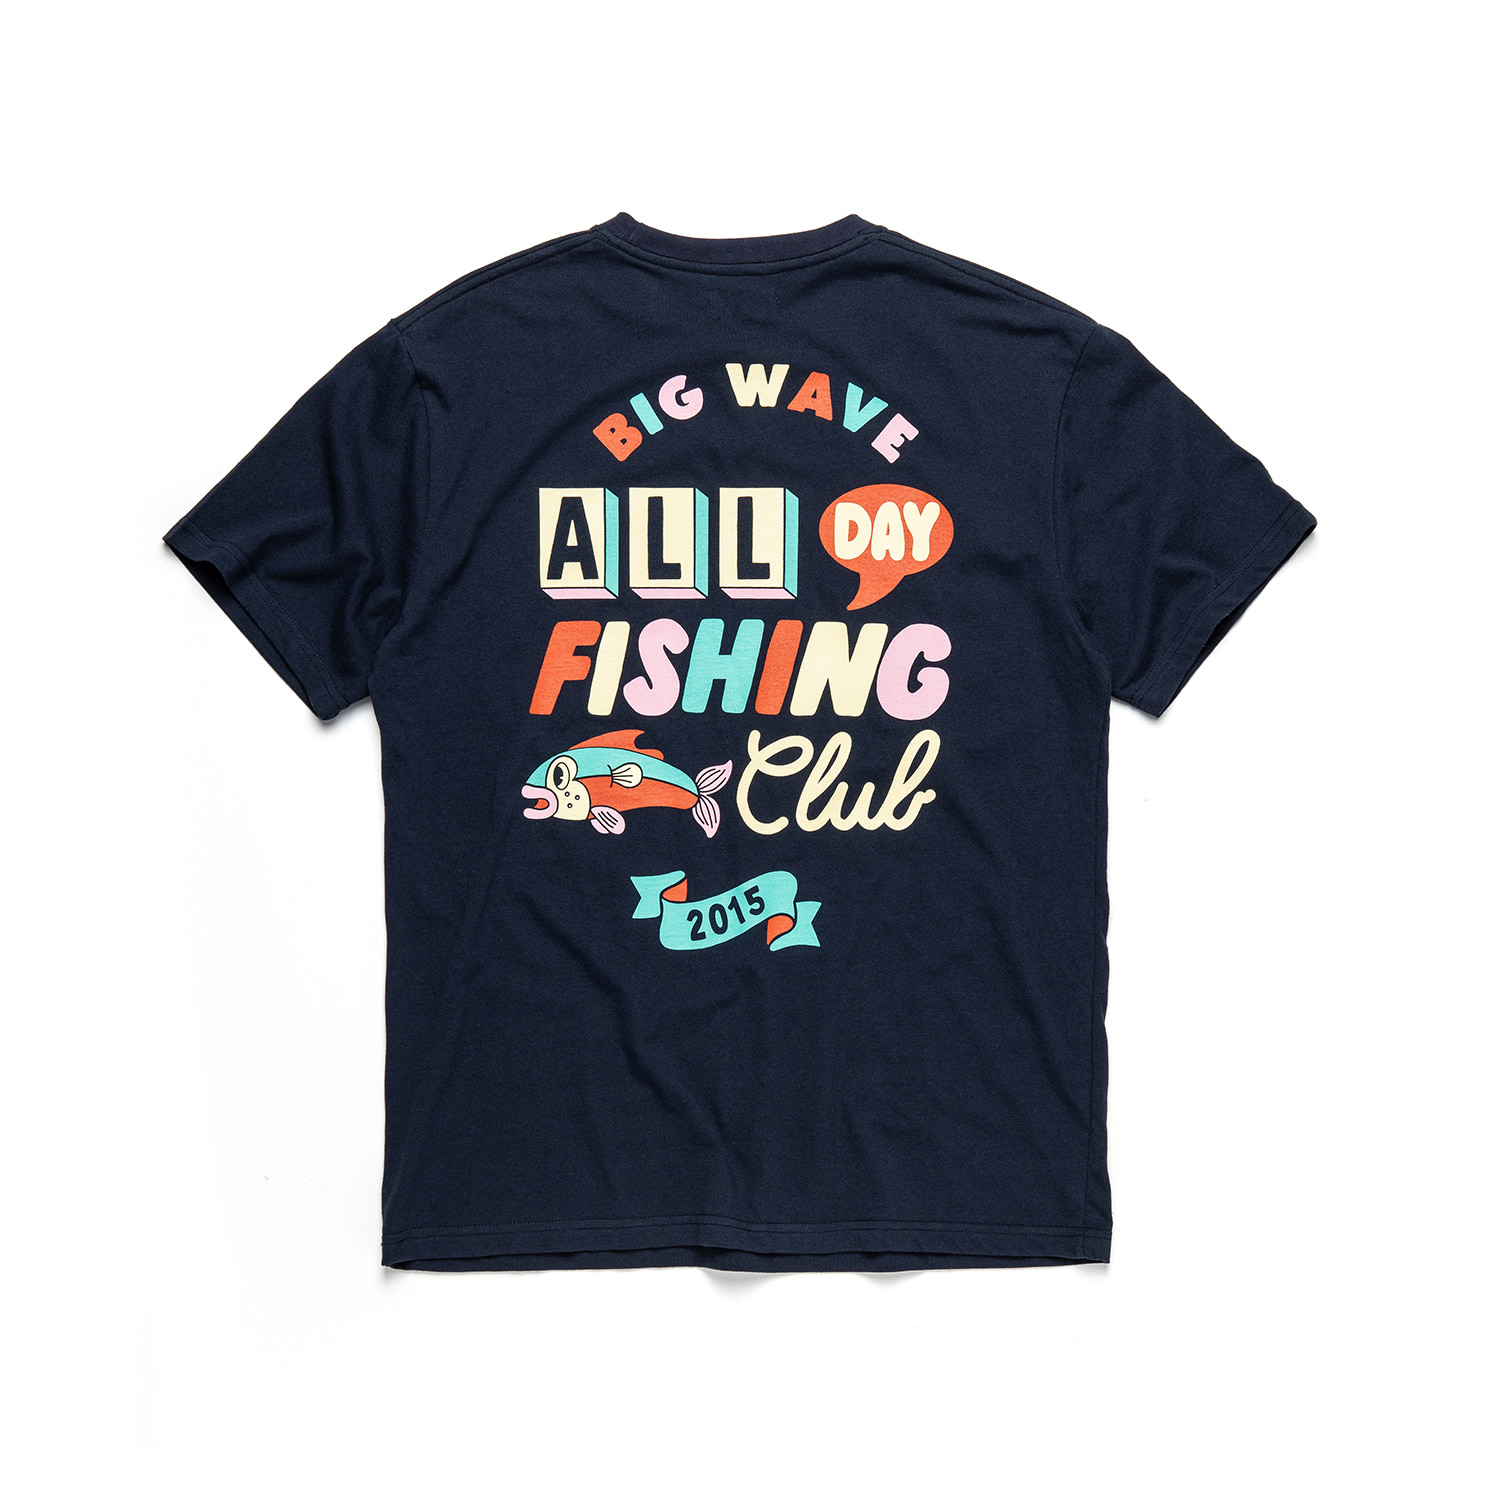 [YEYE x BW] All Day Fishing Club Tee